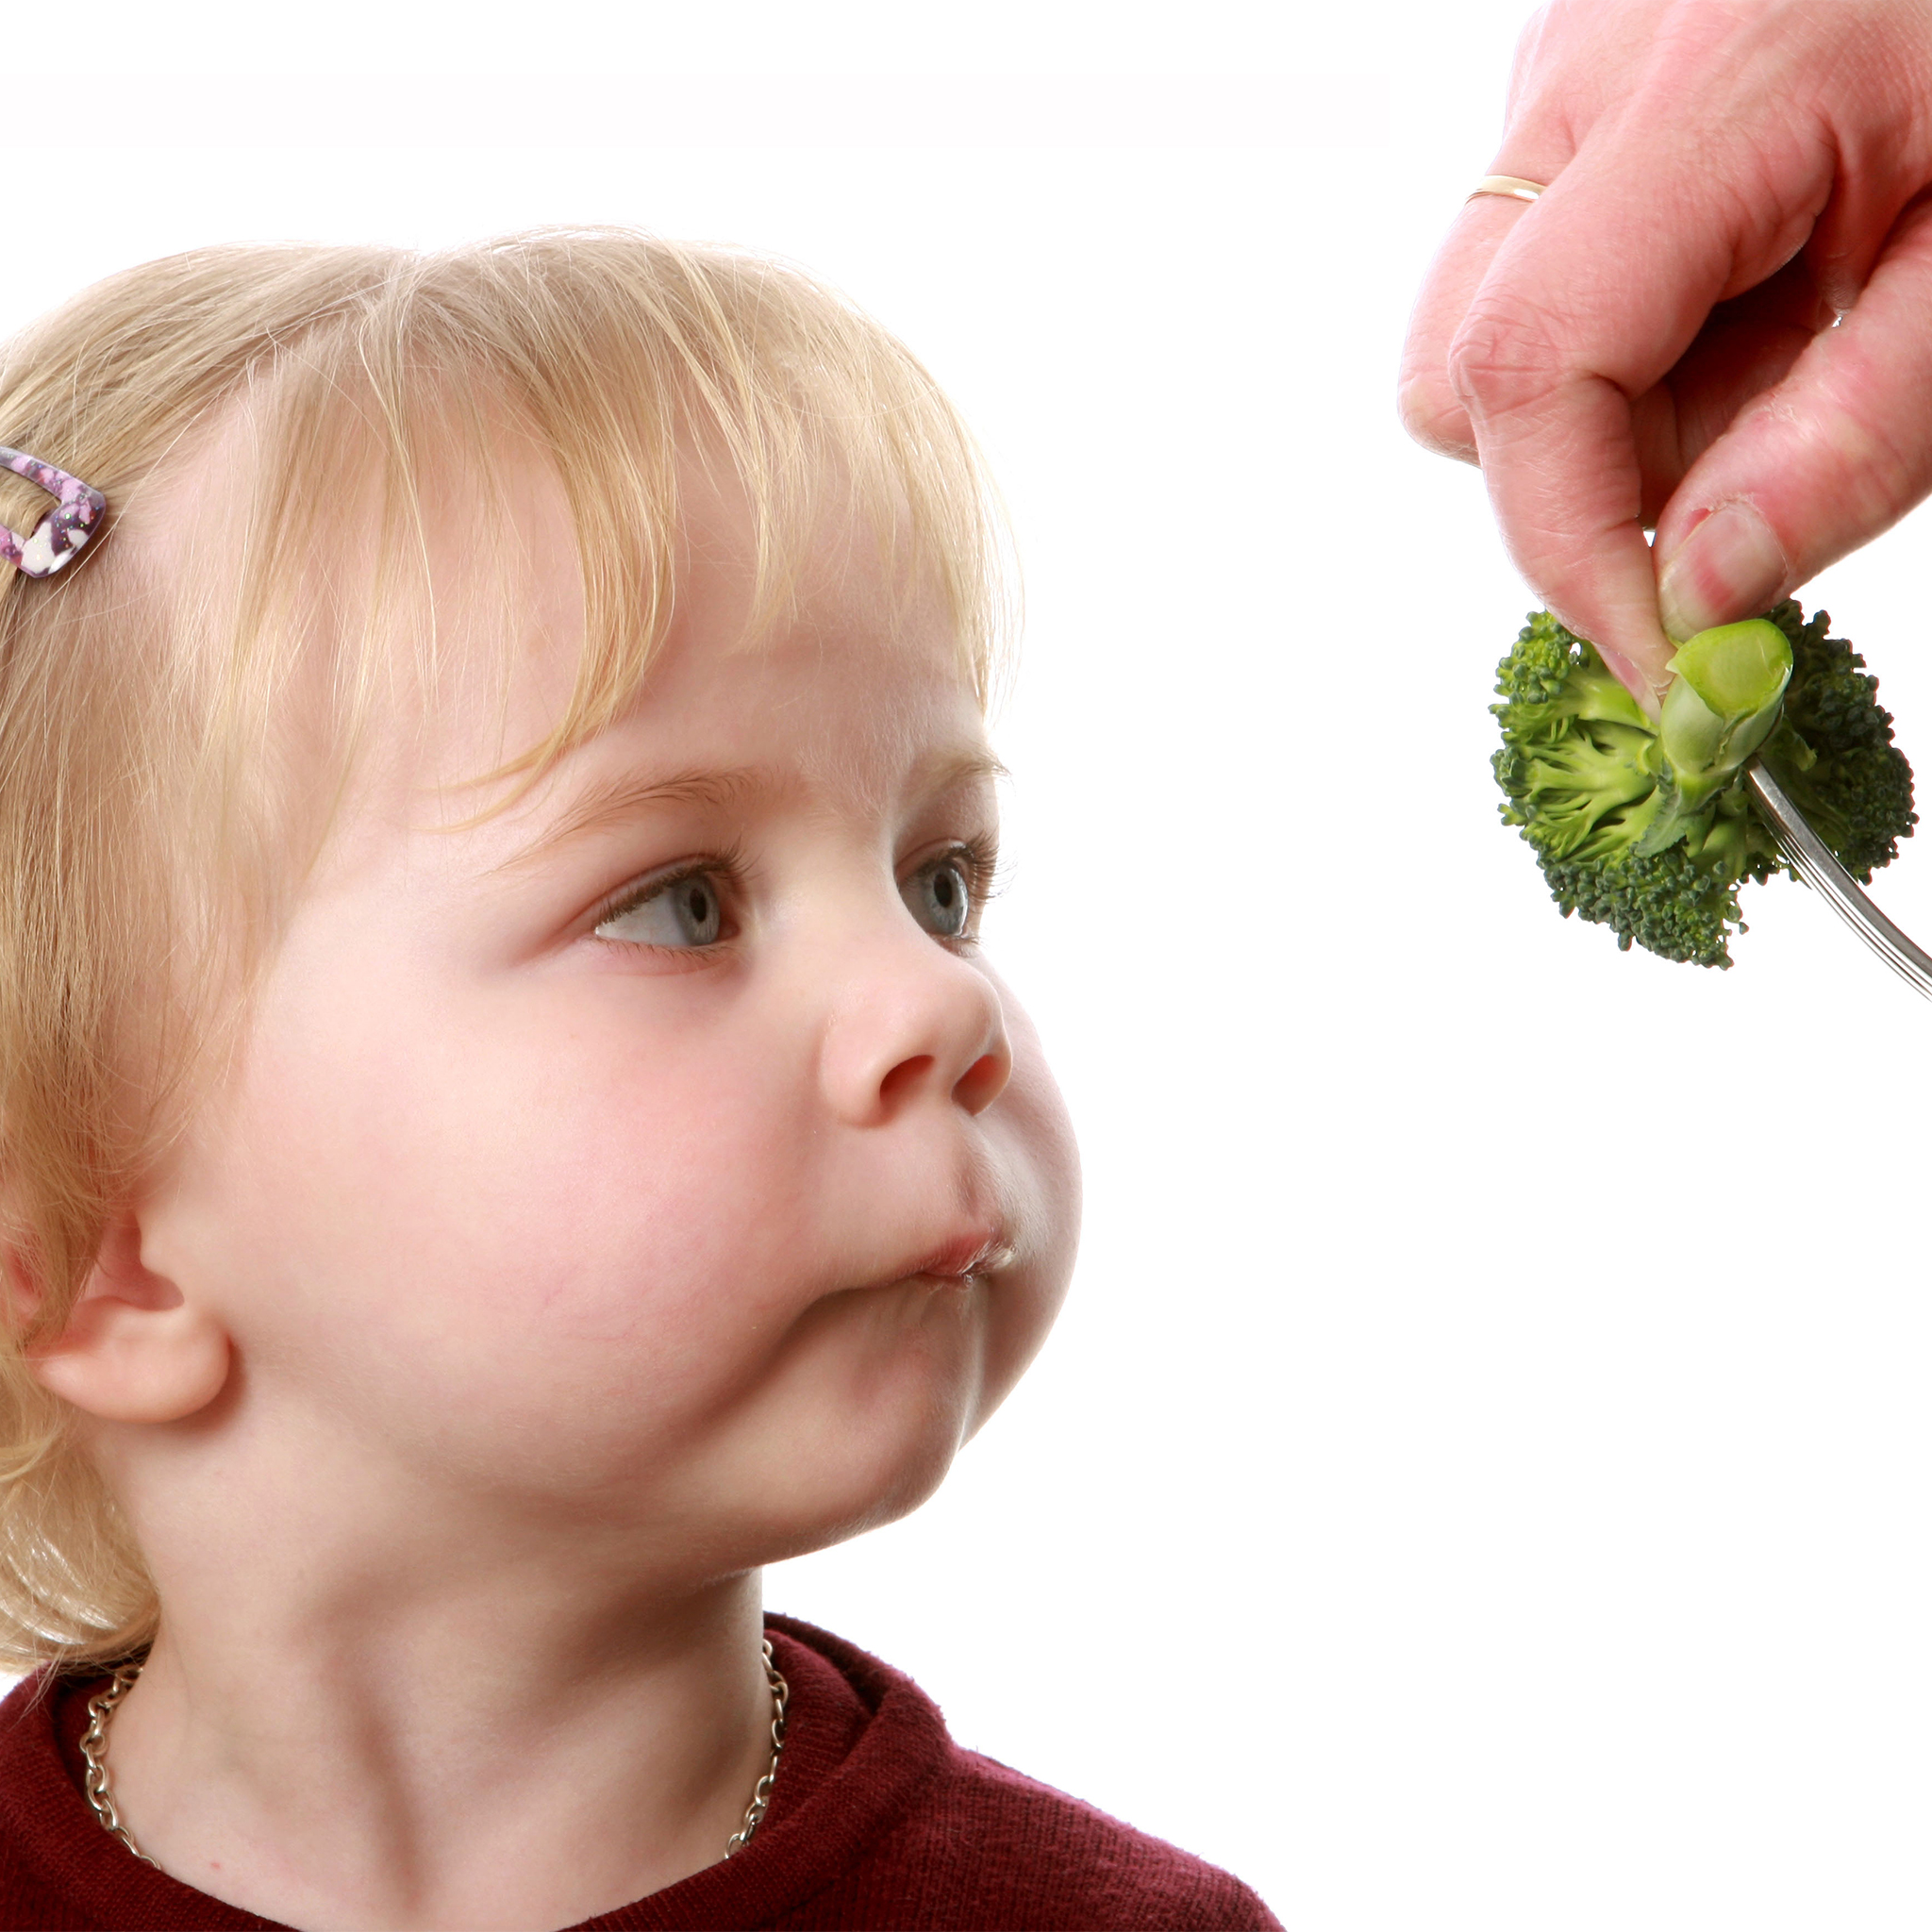 One Big Reason Wealthier Kids End Up Liking Healthier Foods